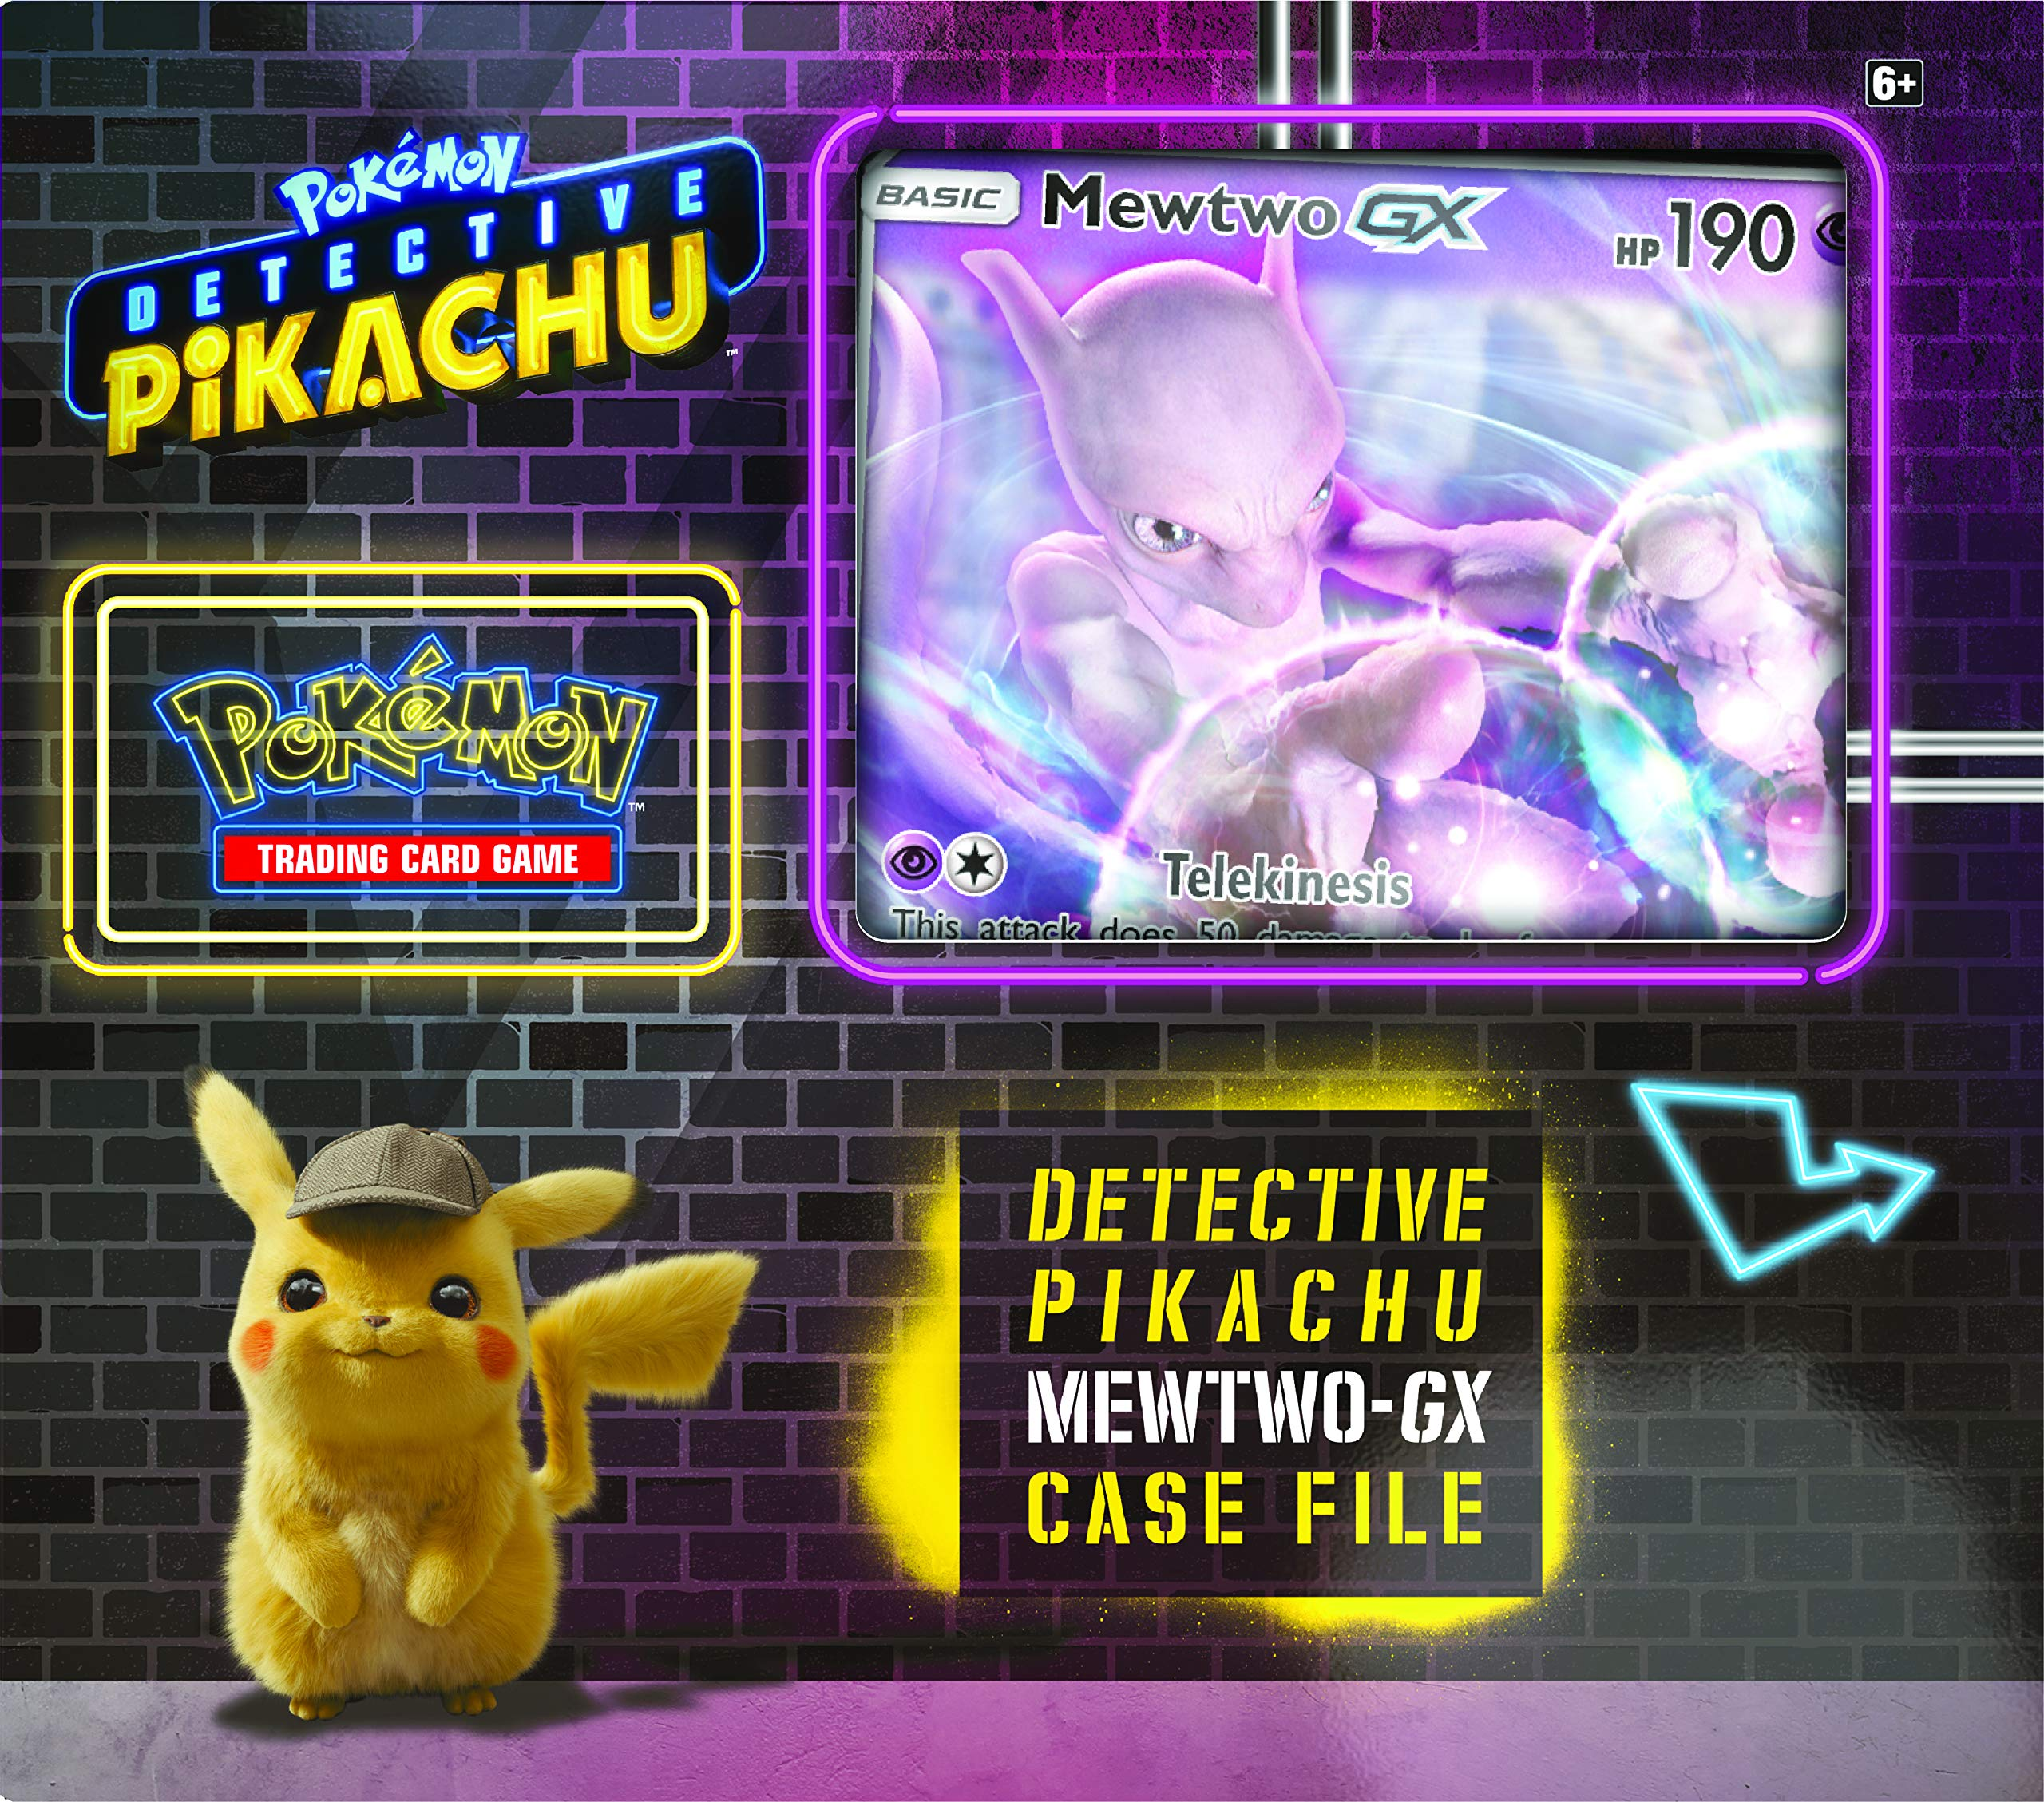 Pokemon TCG: Detective Pikachu Mewtwo-Gx Case File + 6 Booster Pack + A Foil Promo Gx Card + A Oversize Gx Foil Card by Pokemon Cards (Image #1)